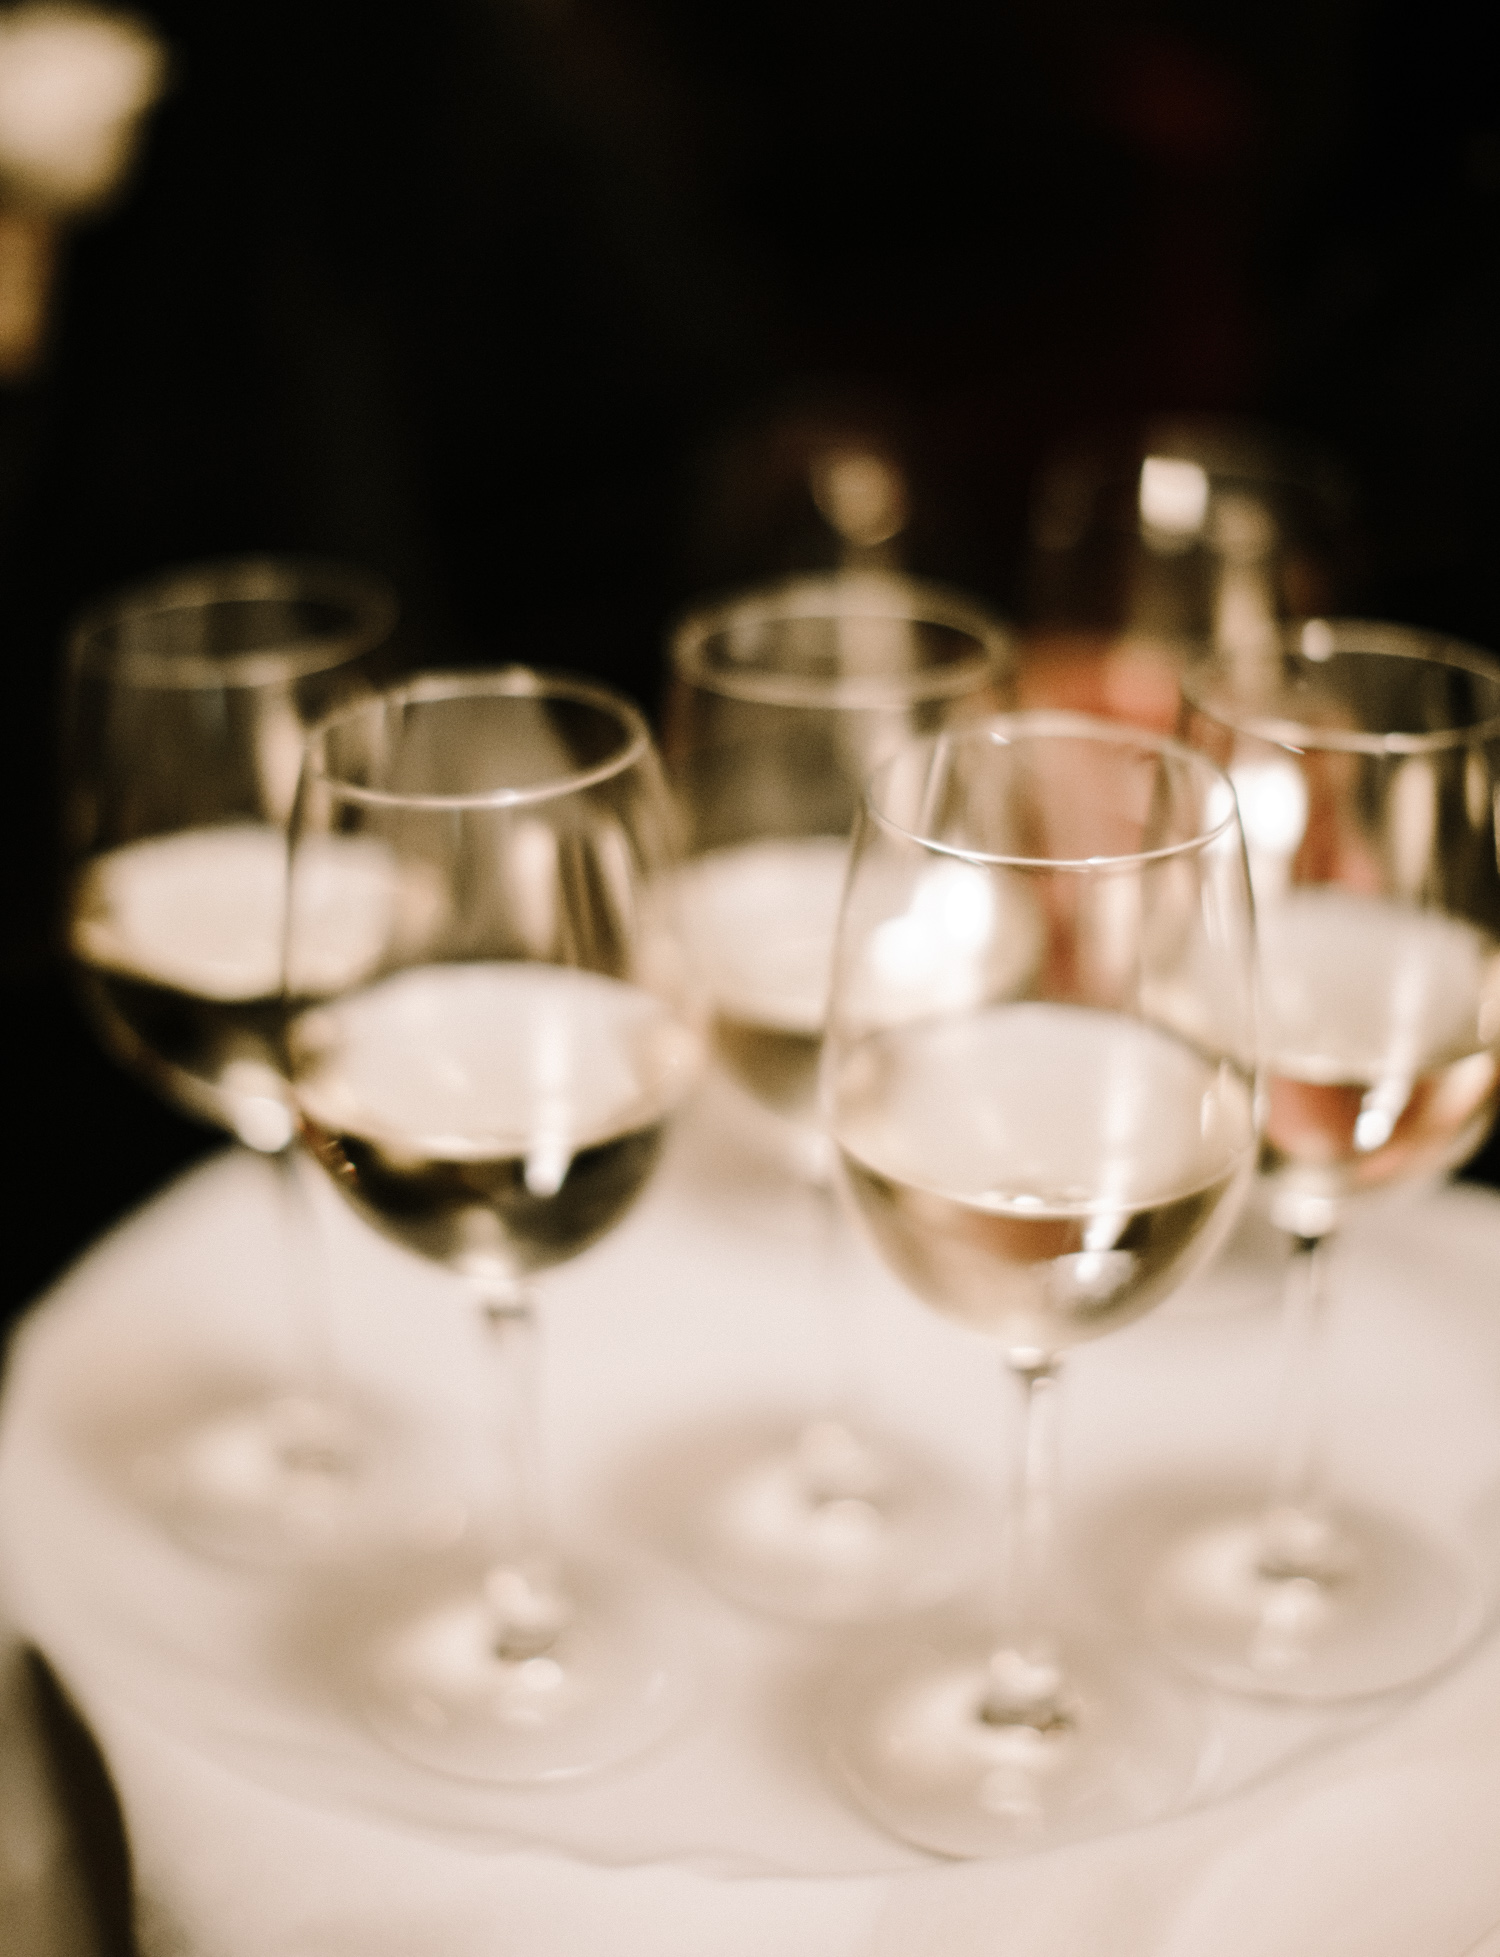 Soft glasses of white and rosé wine rest on a tray in the dark at Brooklyn Winery in New York City